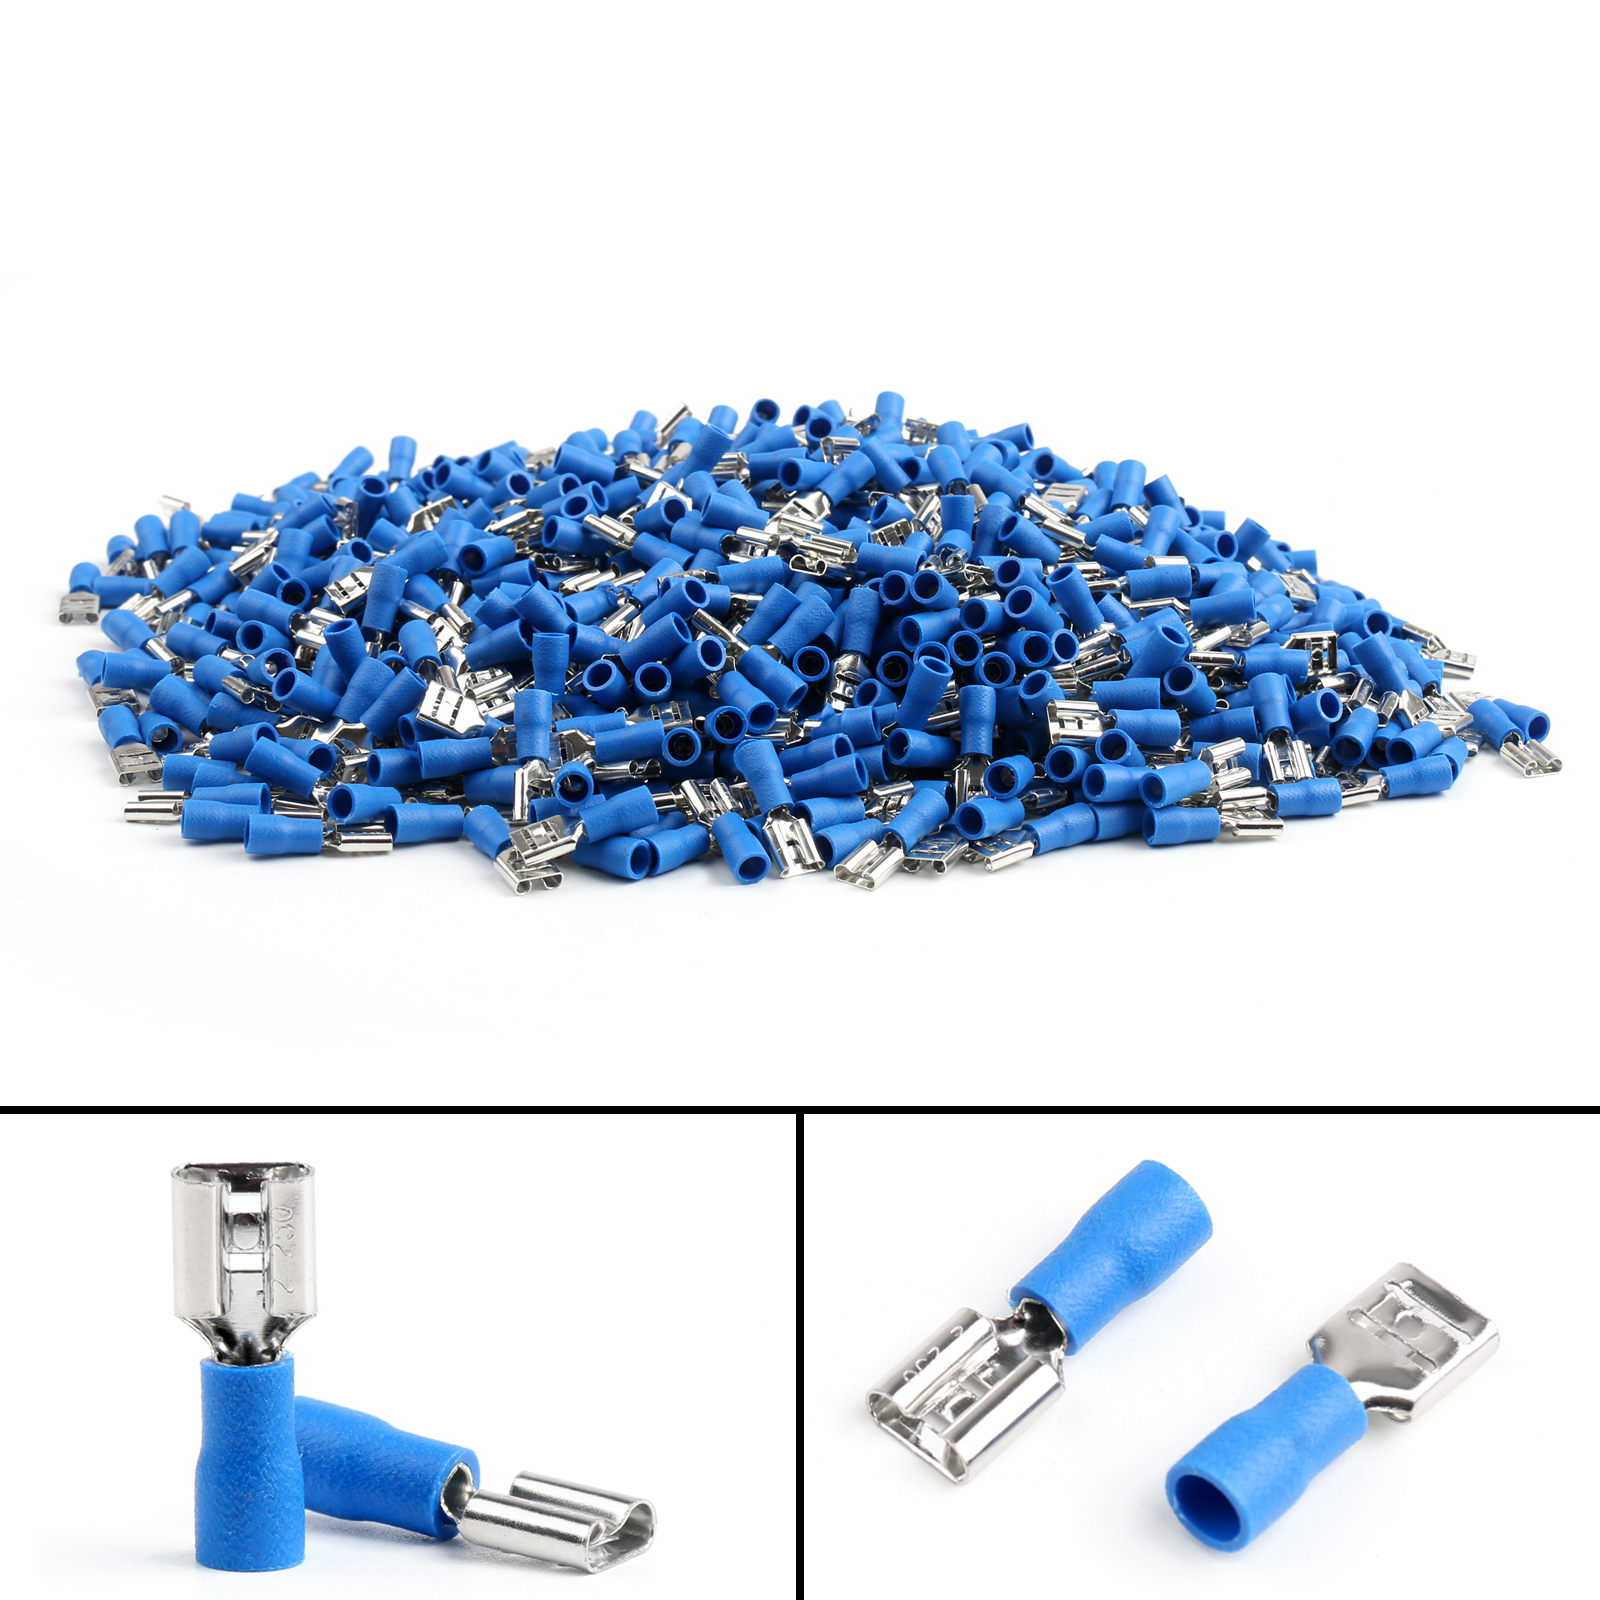 Insulated Female Spade Connector Crimp Terminal 22 16awg